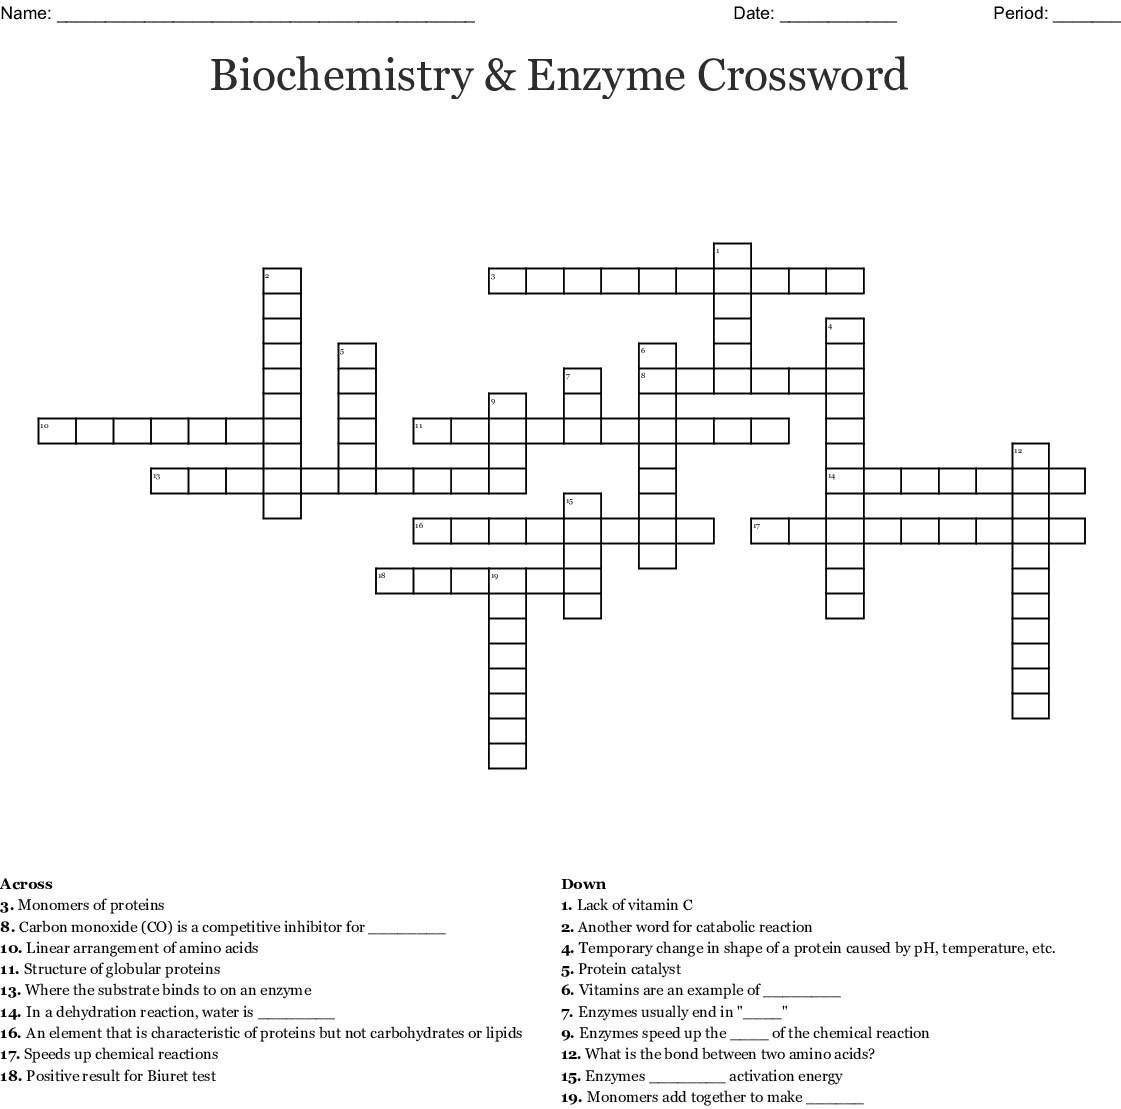 Biology Crossword Puzzle Answer Key - How To Do This